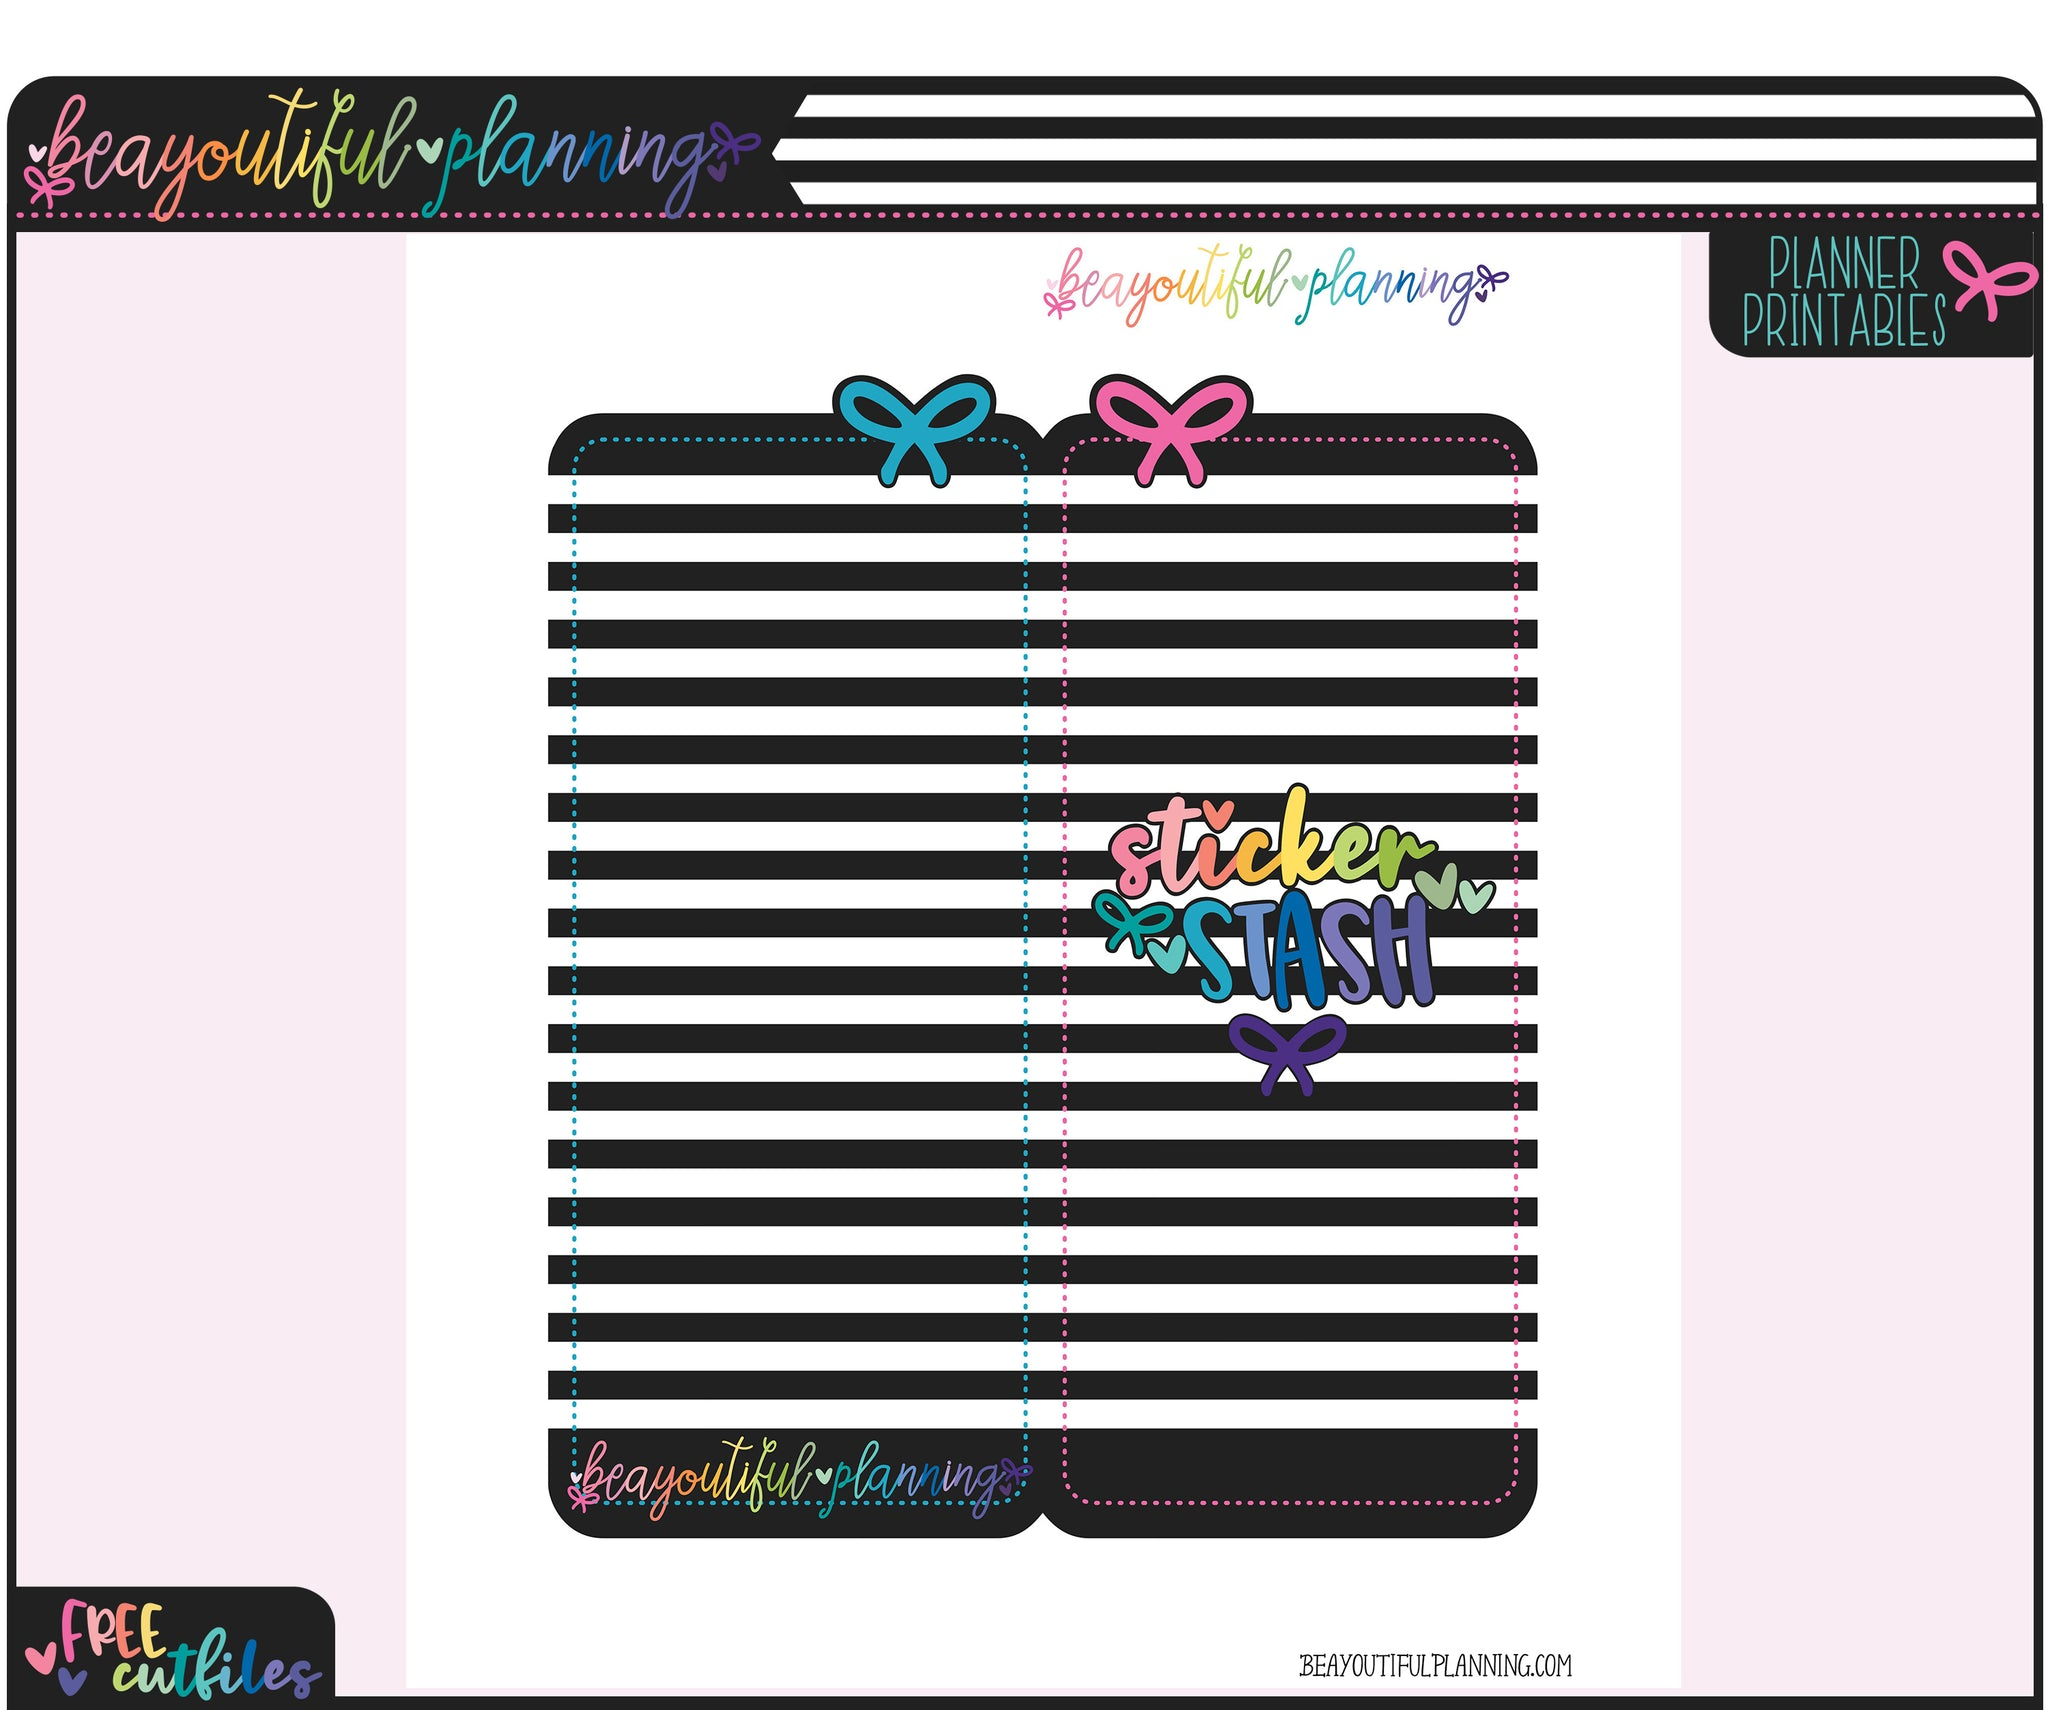 BP Sticker Stash Folder Sticker Printable